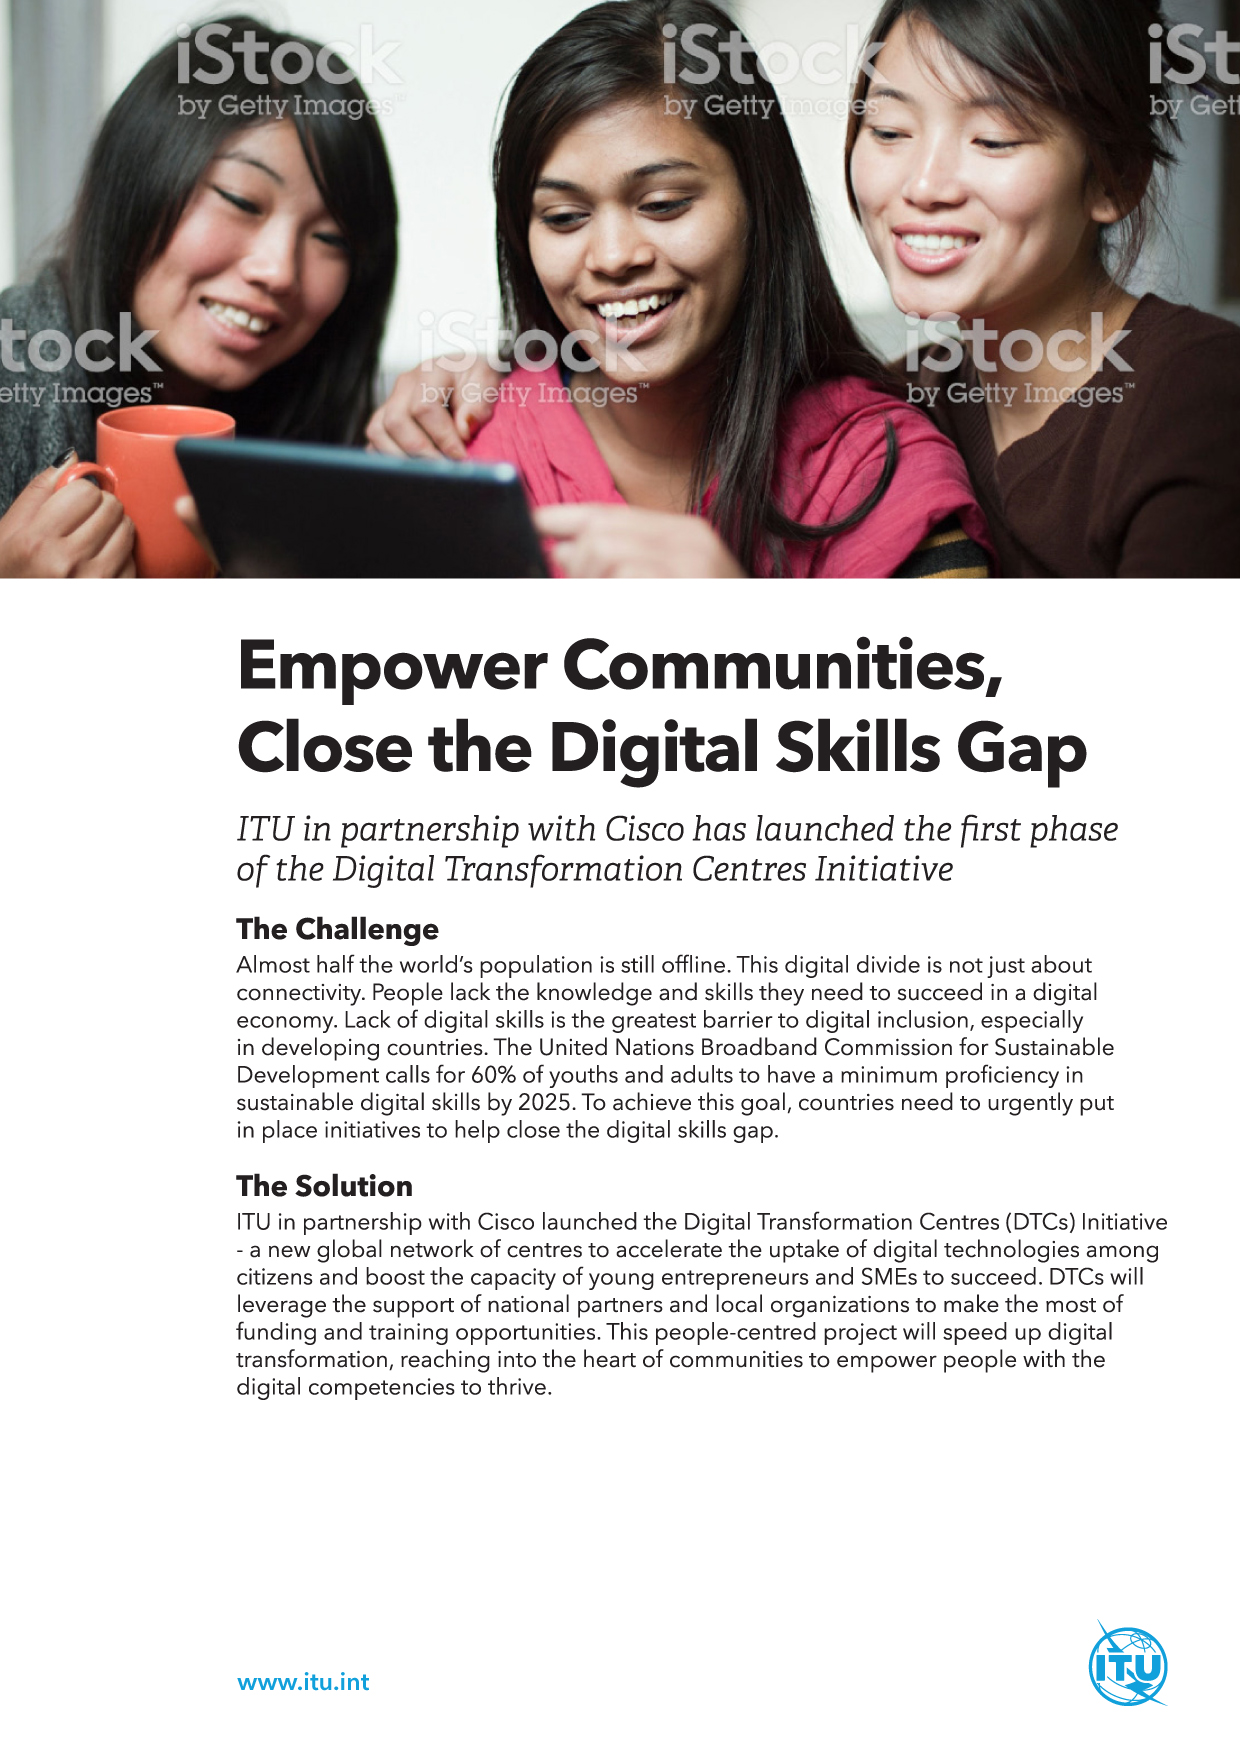 ITU 2 Pager Reports Campaign (Case Study Reports)